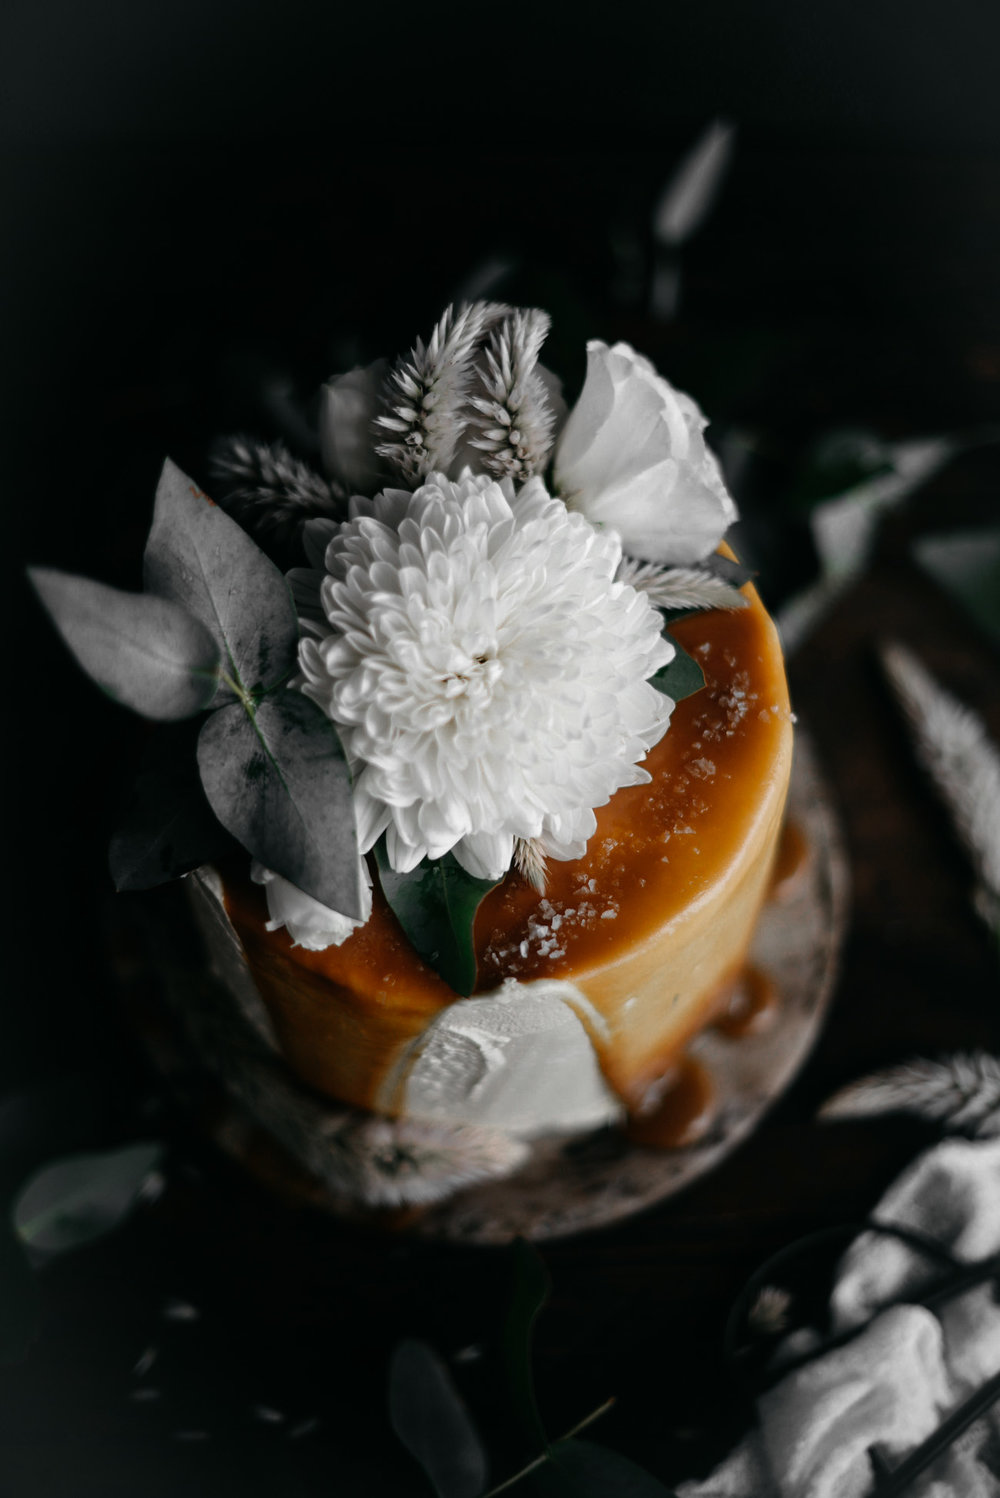 Italian-Orange-Blossom-and-Almond-Cake-with-Orange-Curd-Mascarpone-Swiss-Meringue-Buttercream-and-Fleur-d'Oranger-Caramel-8.jpg